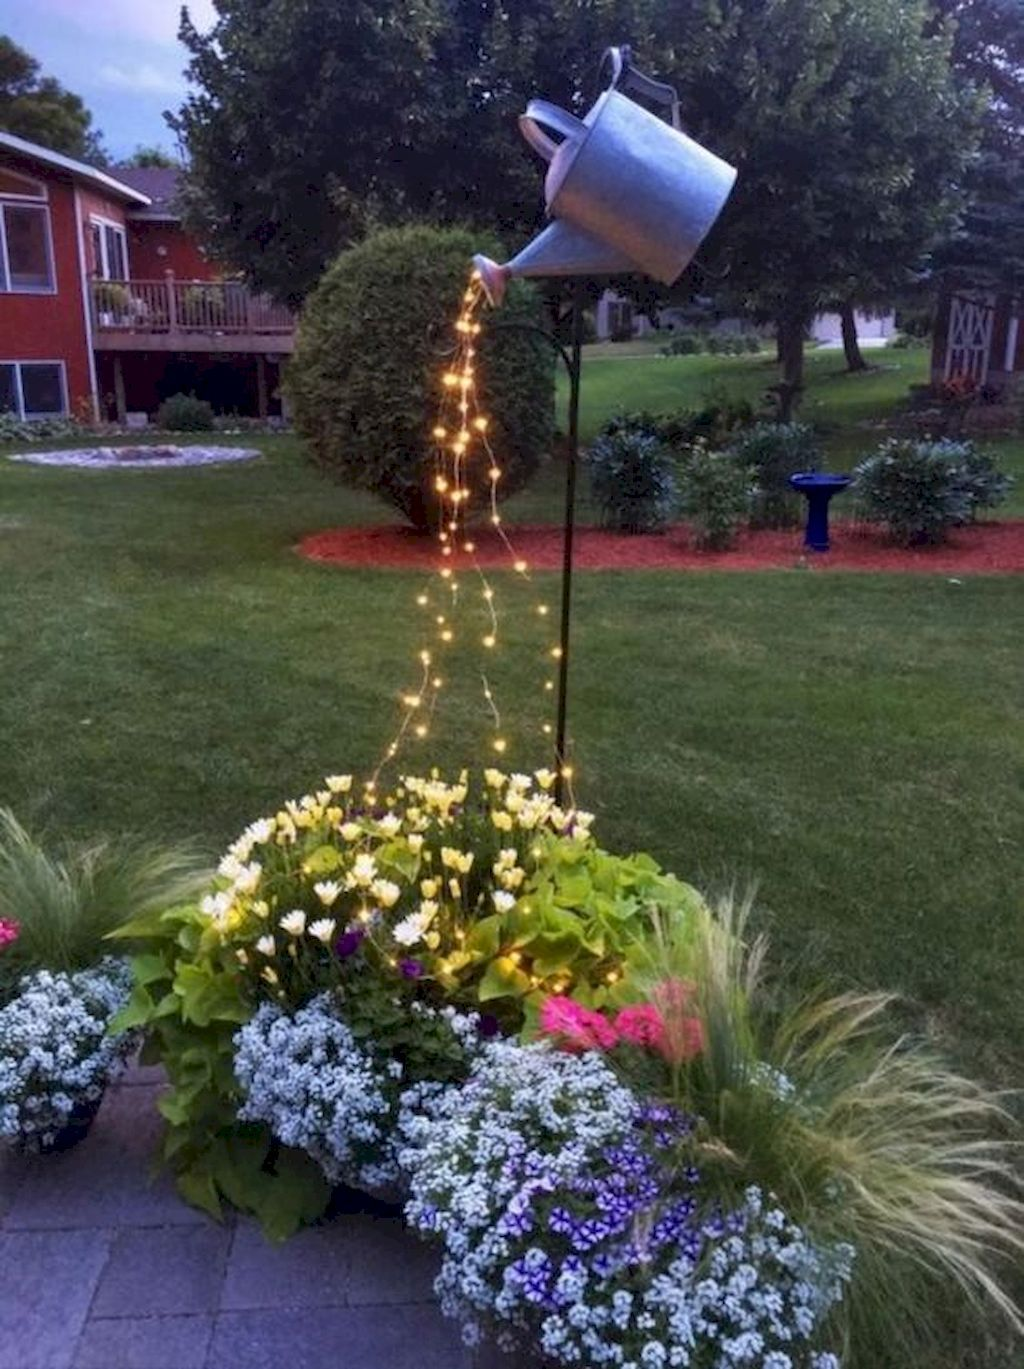 Photo of 50 Stunning Spring Garden Ideas for Front Yard and Backyard Landscaping